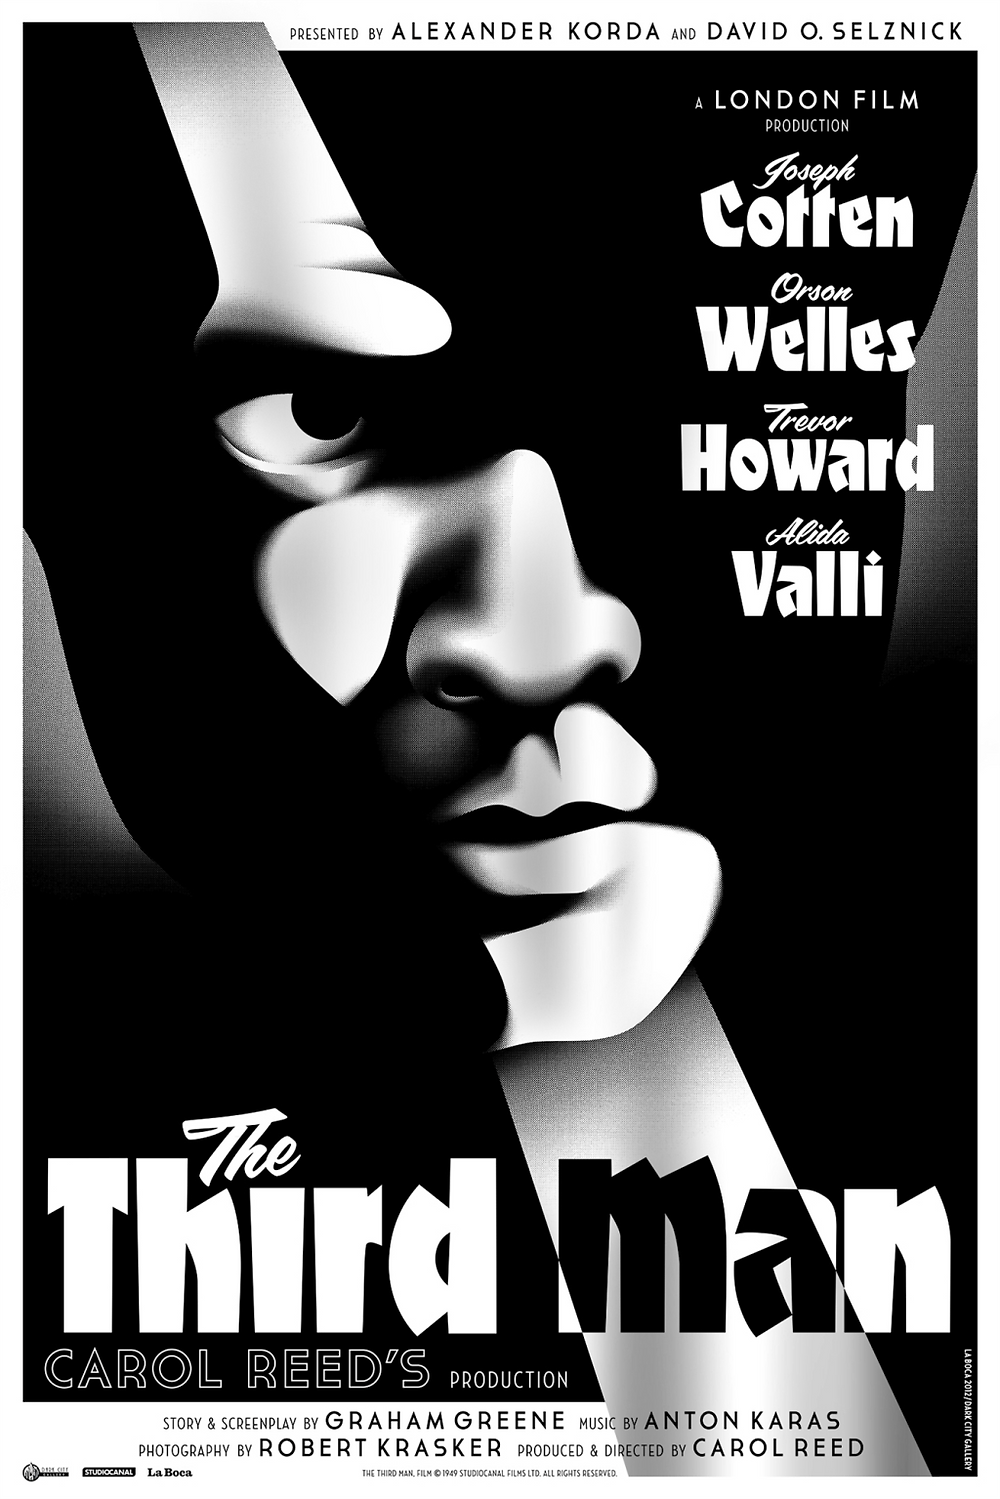 The Third Man poster - A Classic Review